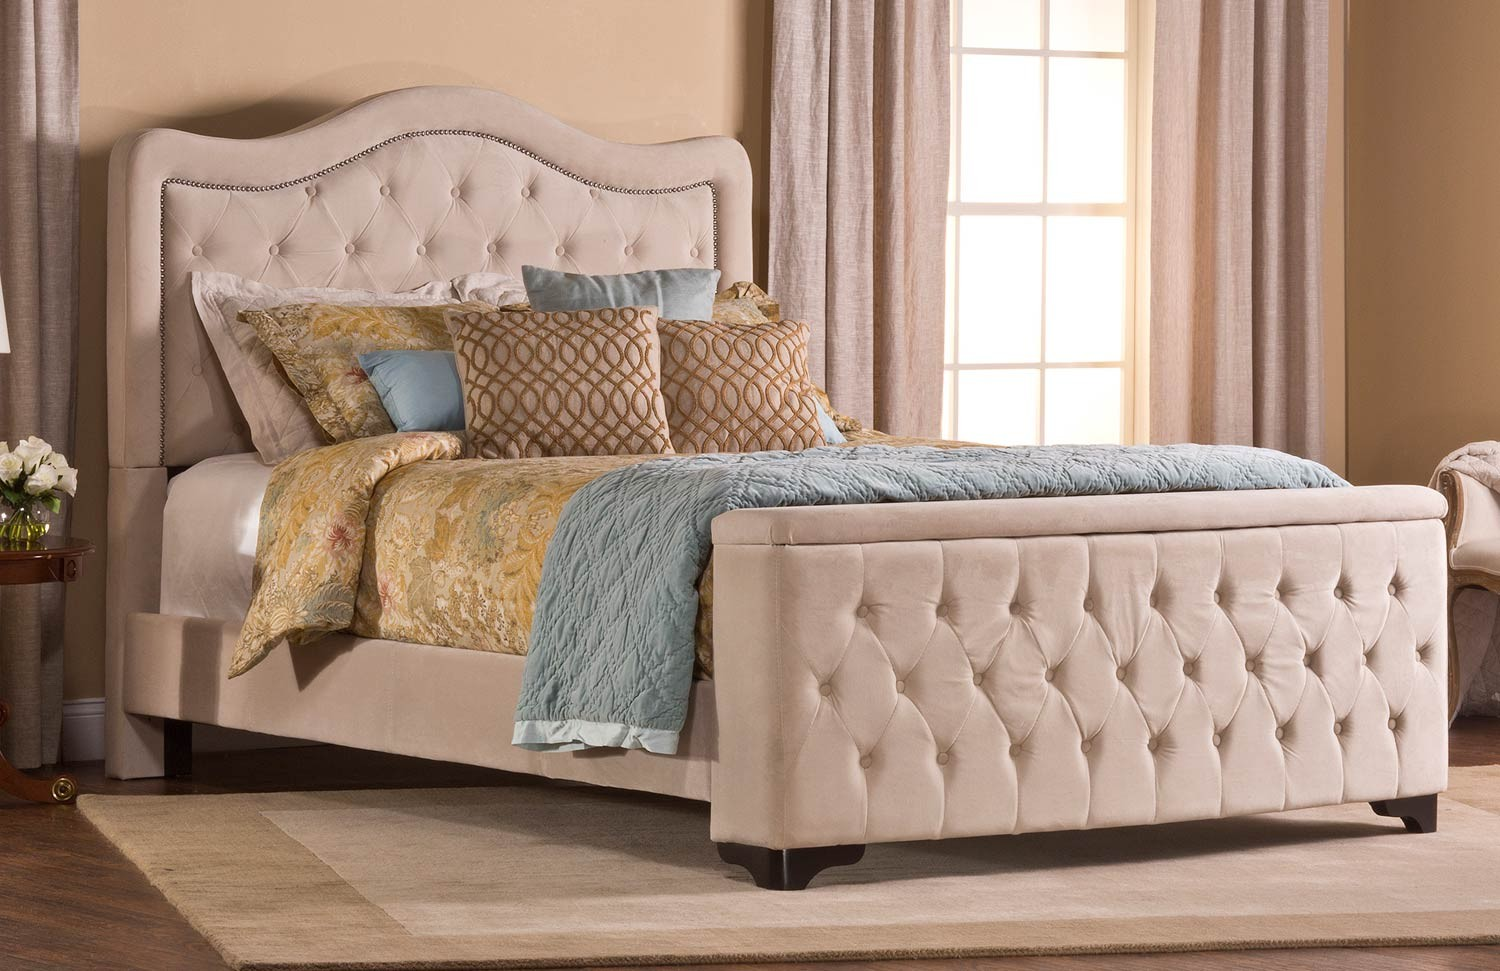 Hillsdale Trieste Tufted Upholstered Bed - Storage Footboard - Buckwheat & Hillsdale Trieste Tufted Upholstered Bed - Storage Footboard ...